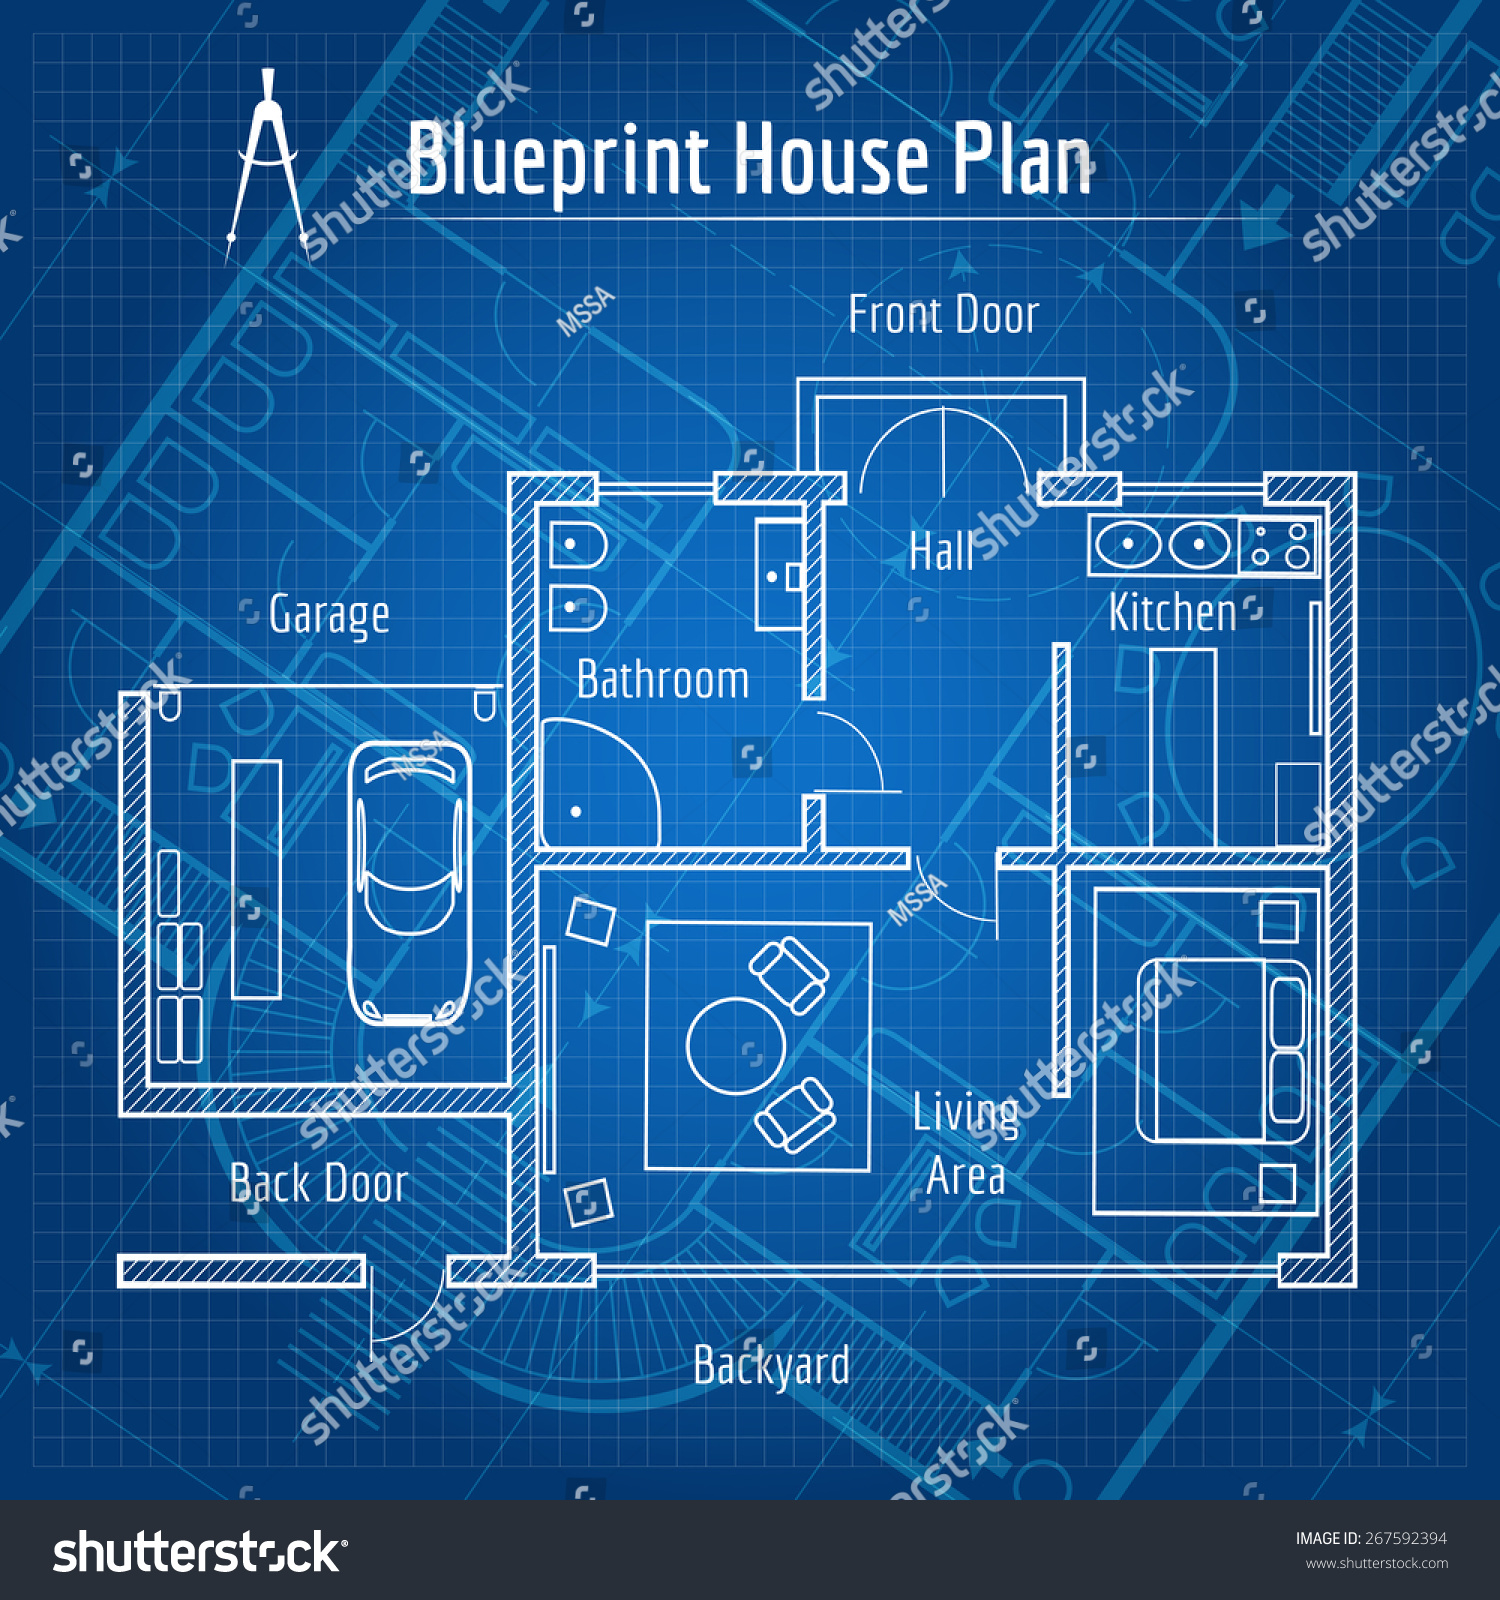 Blueprint house plan  Design architecture home  drawing structure and plan   Vector illustration. Blueprint House Plan Design Architecture Home Stock Vector